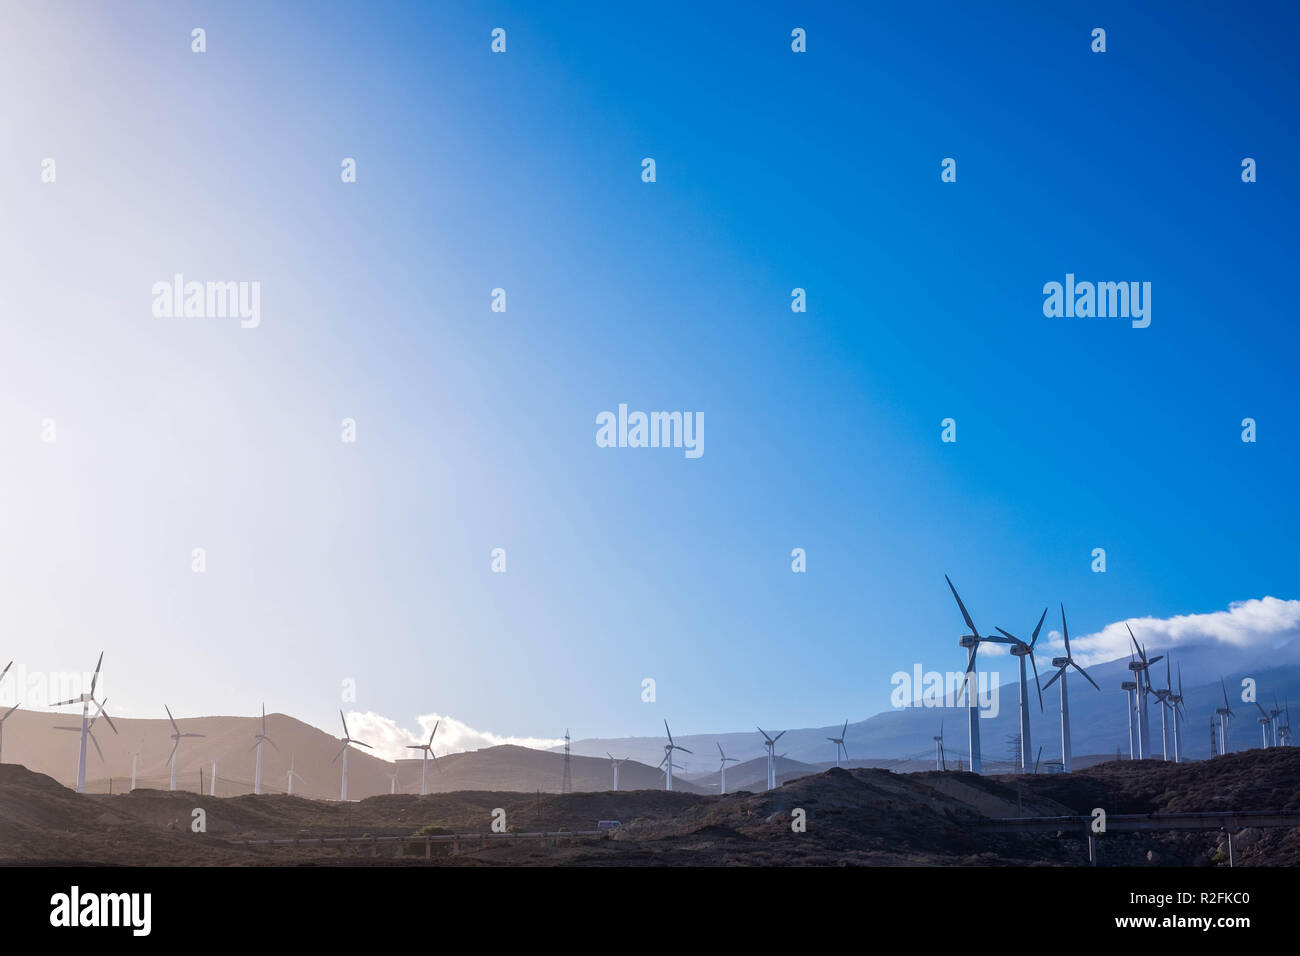 Clean blue sky in beautiful nature concept tiwh clean energy production with wind farm. Tenerife. Modernity concept - Stock Image